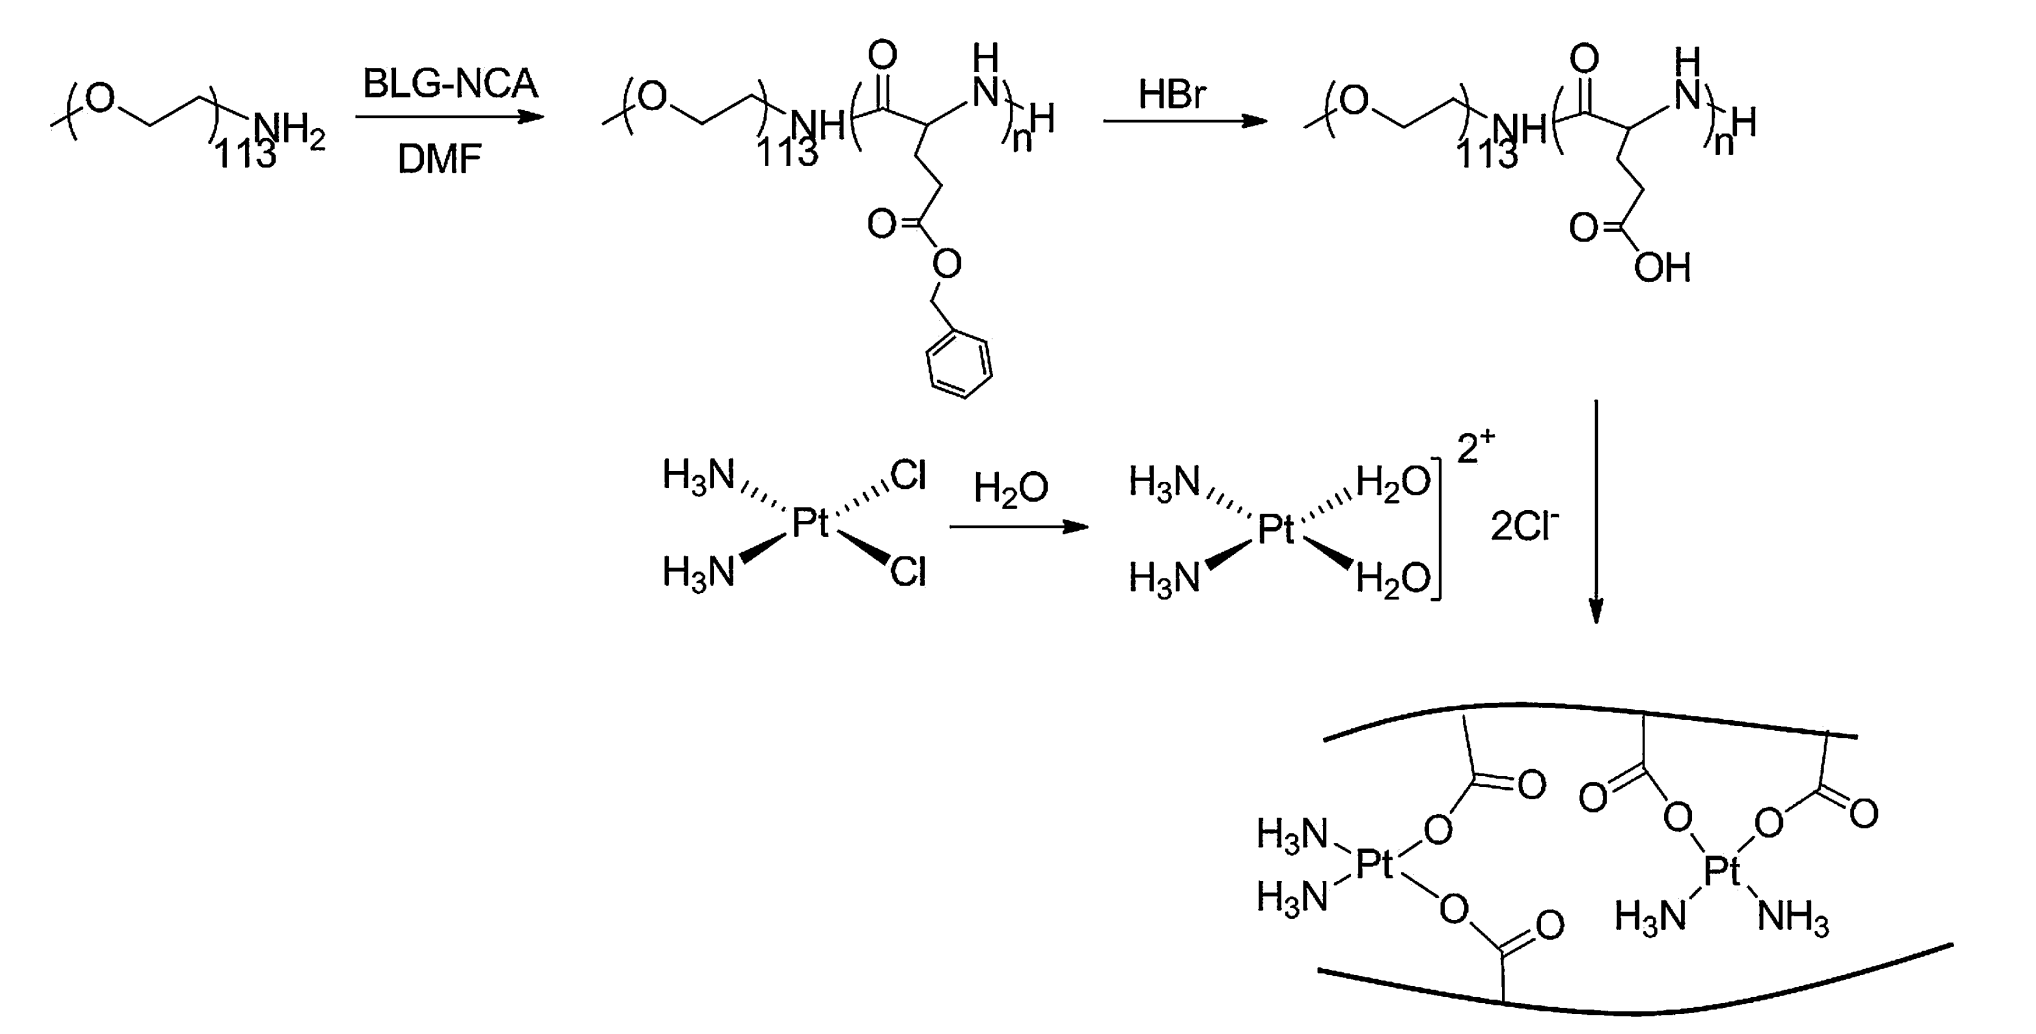 Methoxypoly(ethylene glycol)-block-Poly- (L-glutamic acid)-Loaded Cisplatin and a Combination With iRGD for the Treatment of Non-Small-Cell Lung Cancers